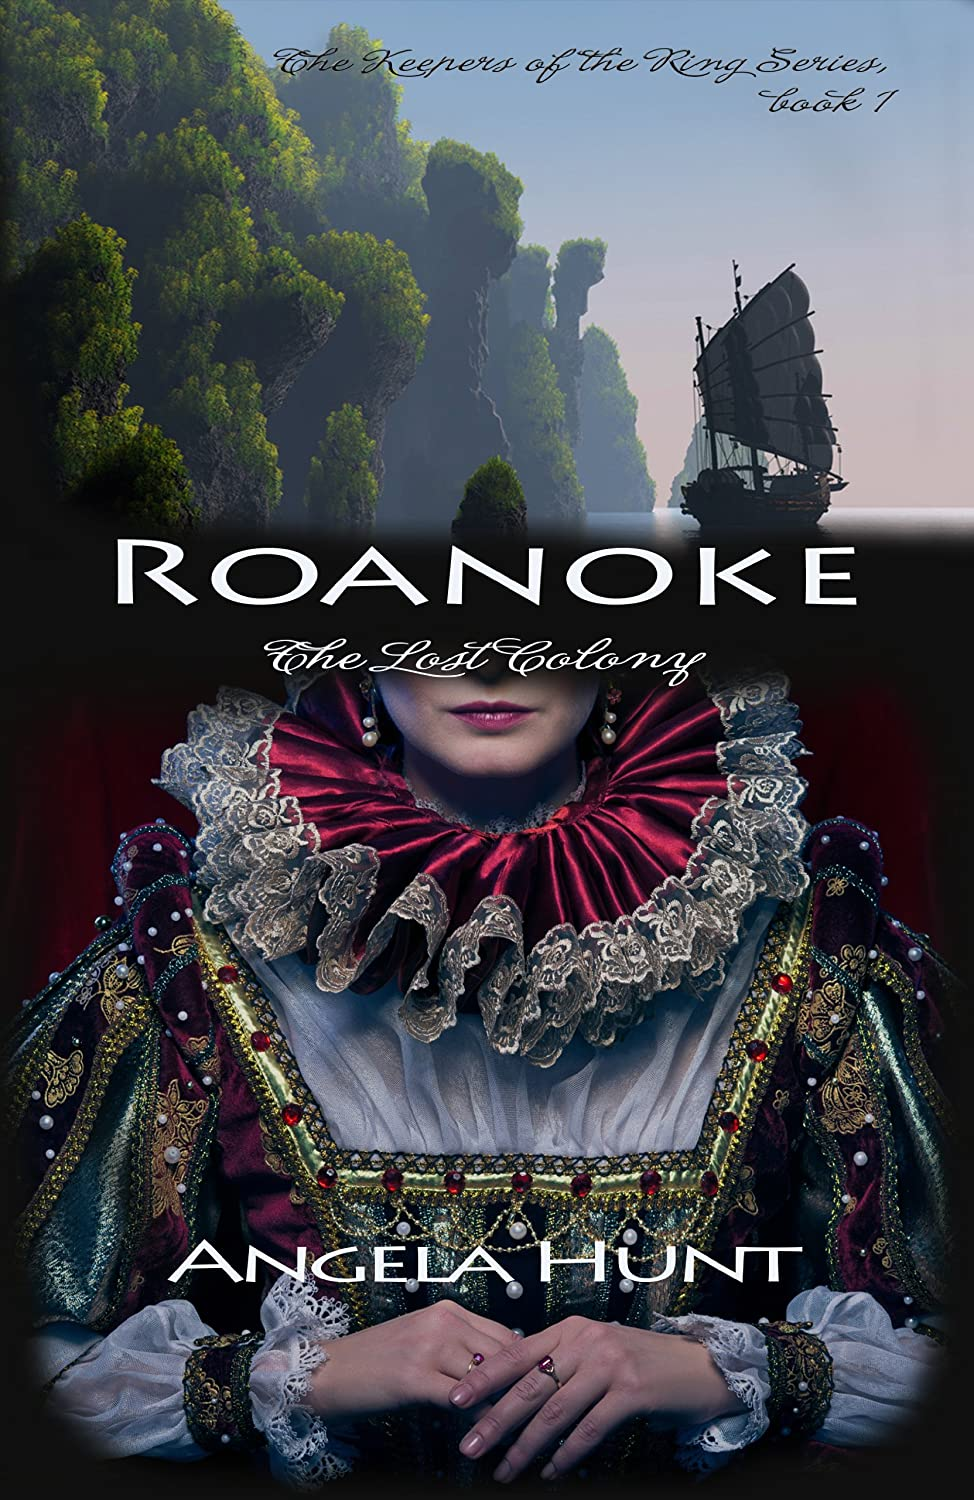 Roanoke (The Keepers of the Ring Book 1) by Angela Hunt